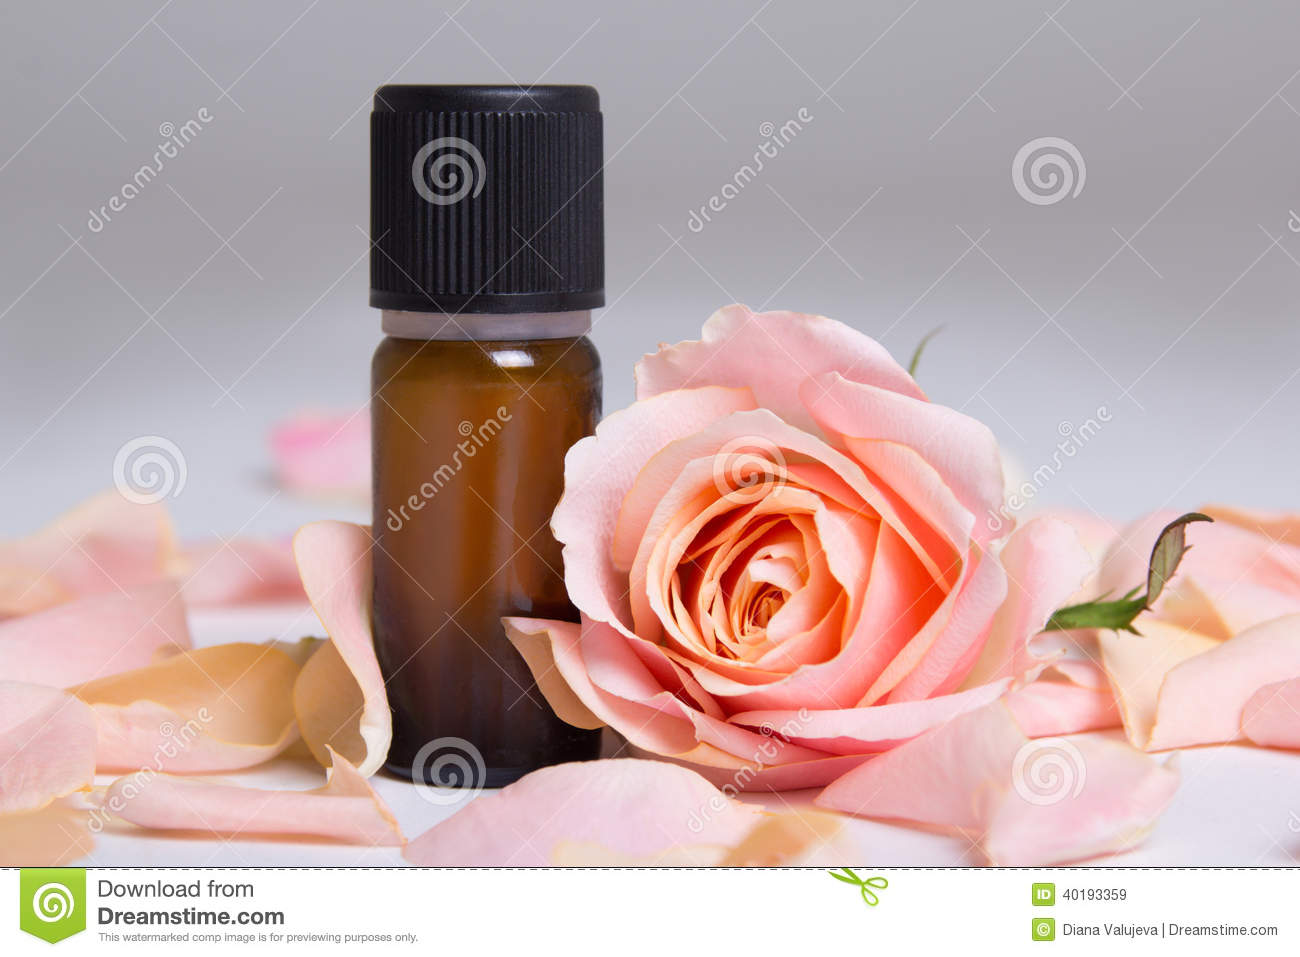 Bottle of essential oil and rose petals over grey stock photo image 40193359 - Rose essential oil business ...